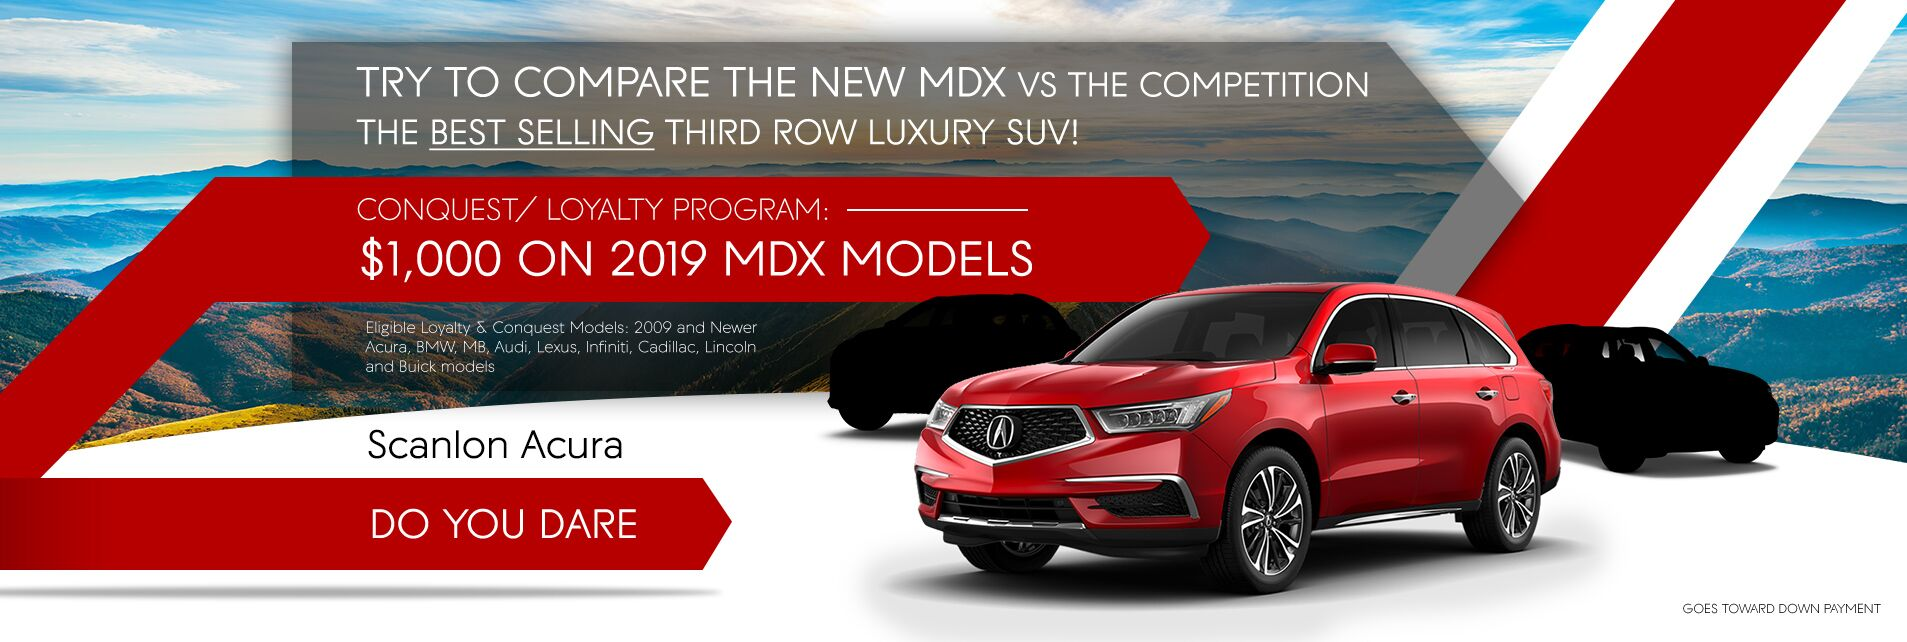 MDX Conquest